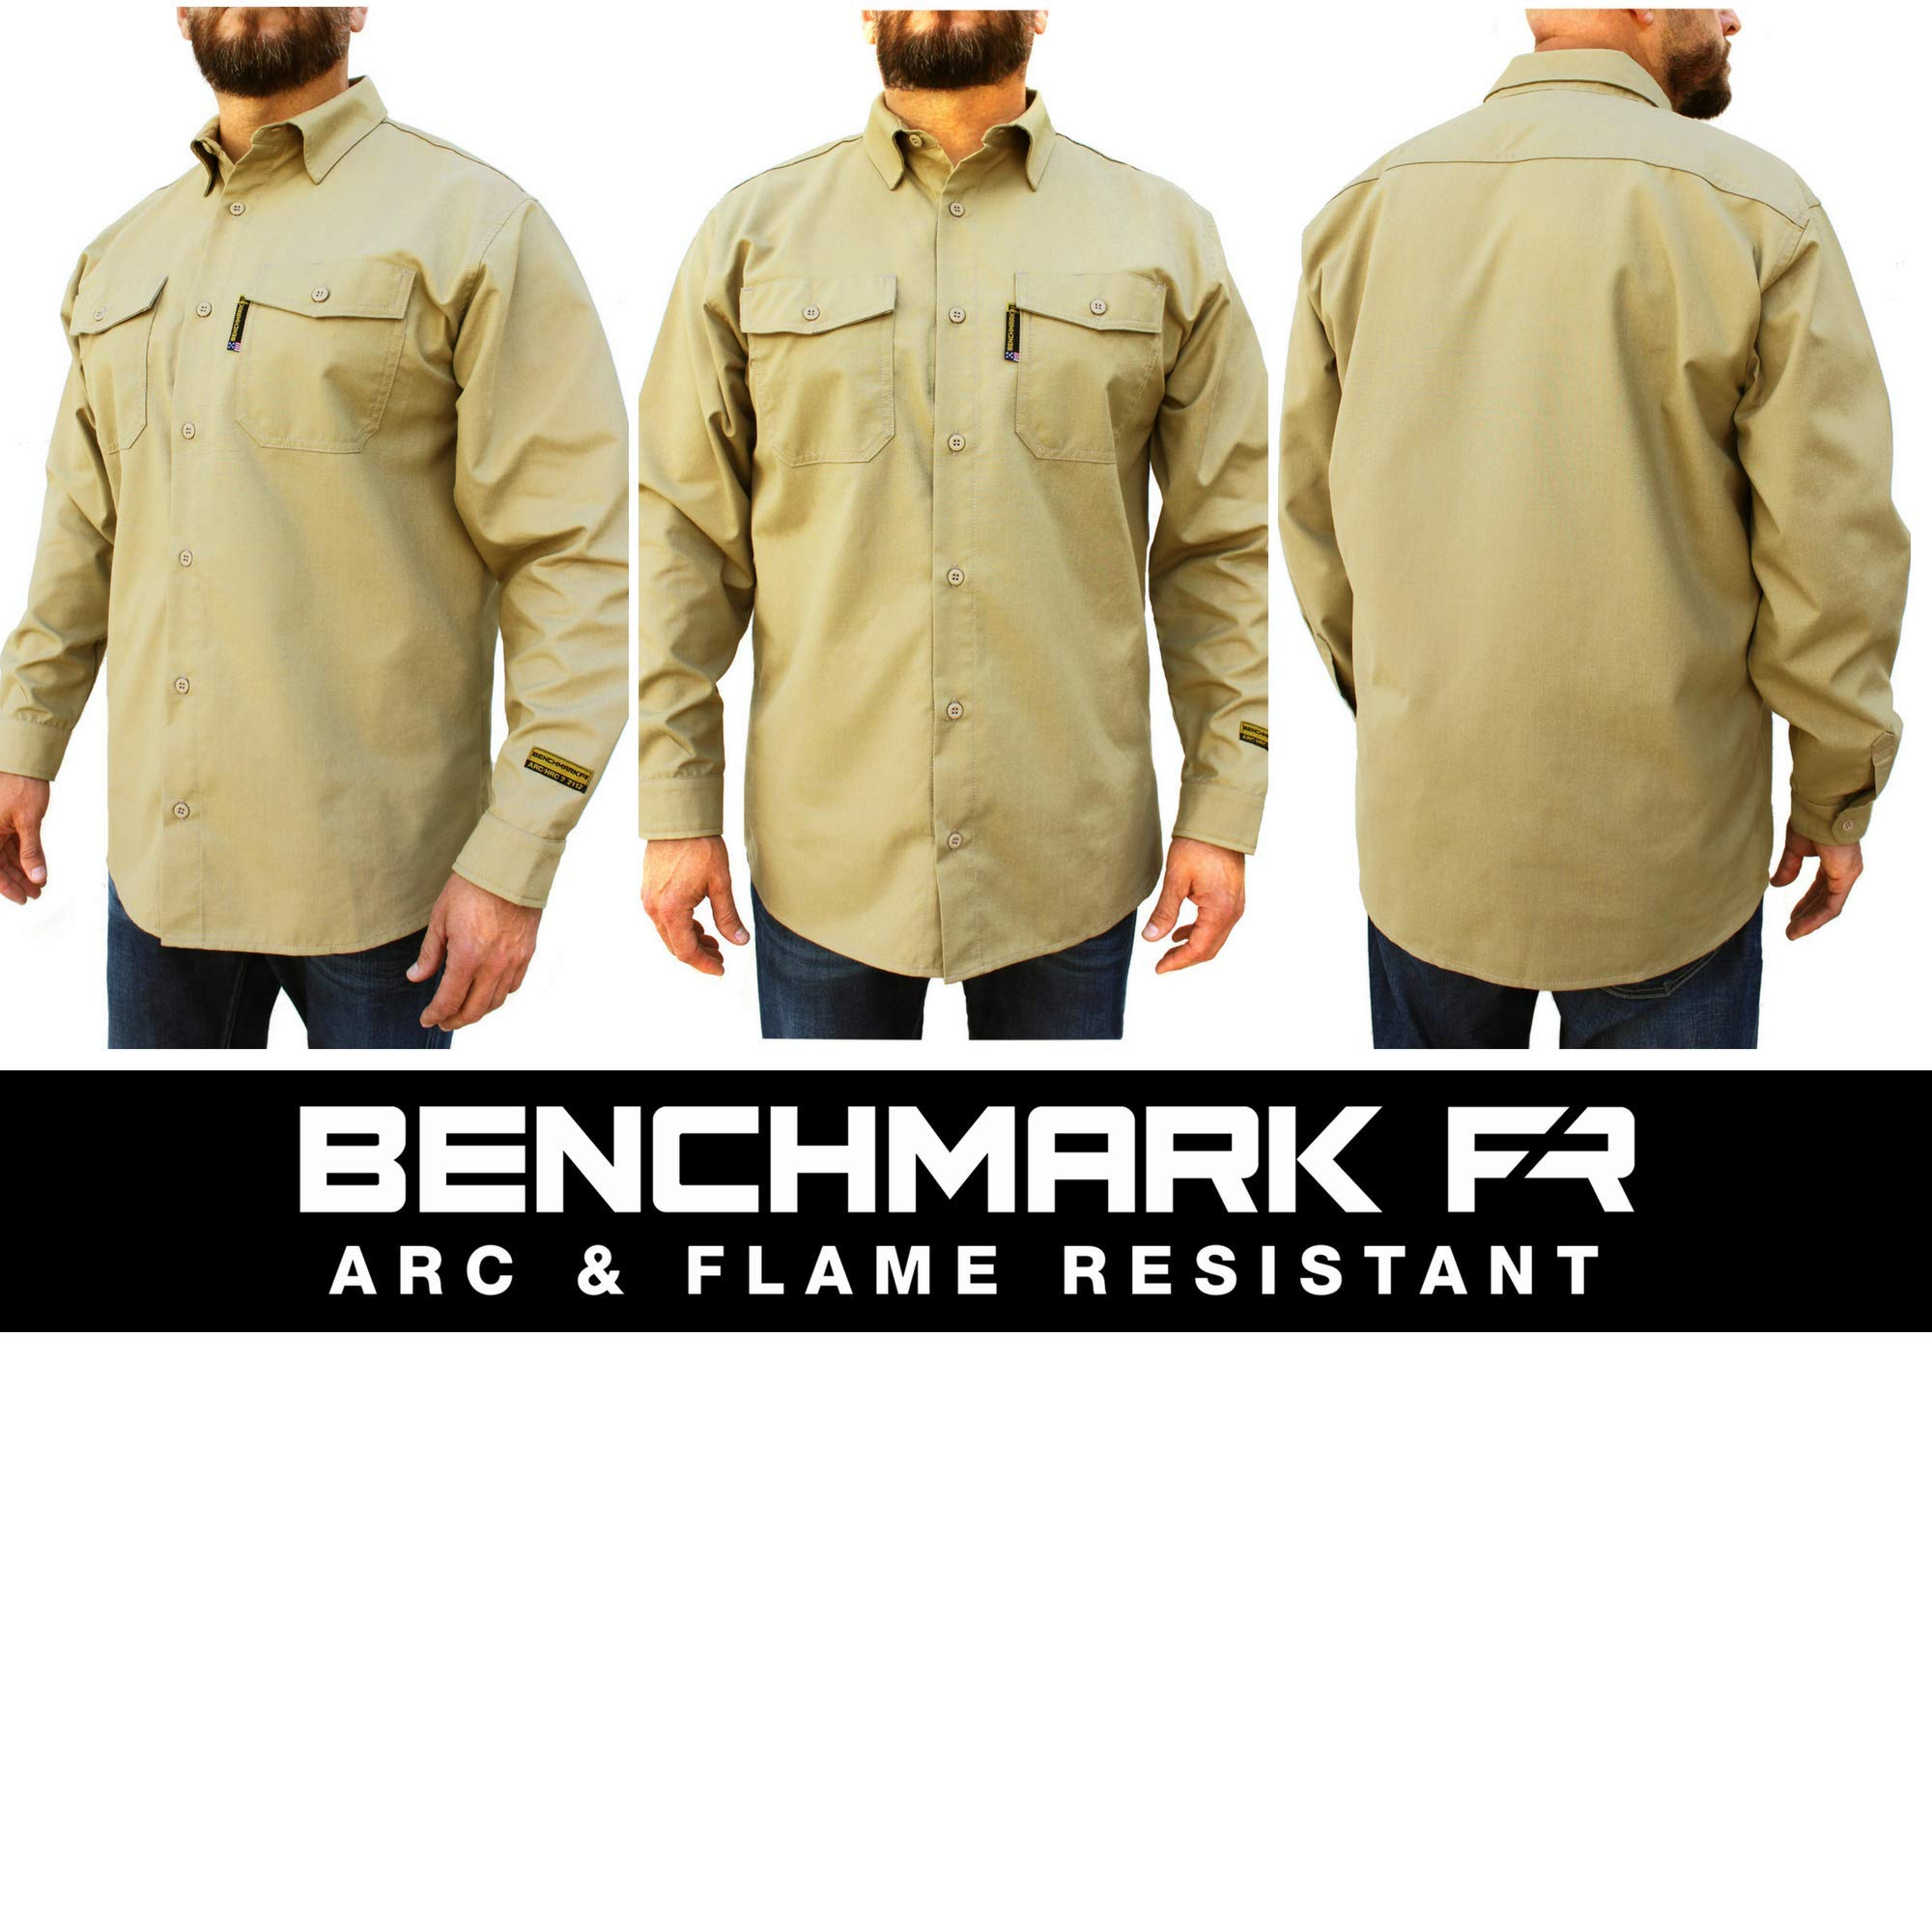 Benchmark FR Silver Bullet, 5.1 oz Ultra Lightweight FR Shirt, NPFA 2112 & CAT 2, Moisture Wicking, Men's FRC with 9 Cal rating, Made in USA, Advanced FR Materials, Beige, Large by Benchmark FR (Image #3)